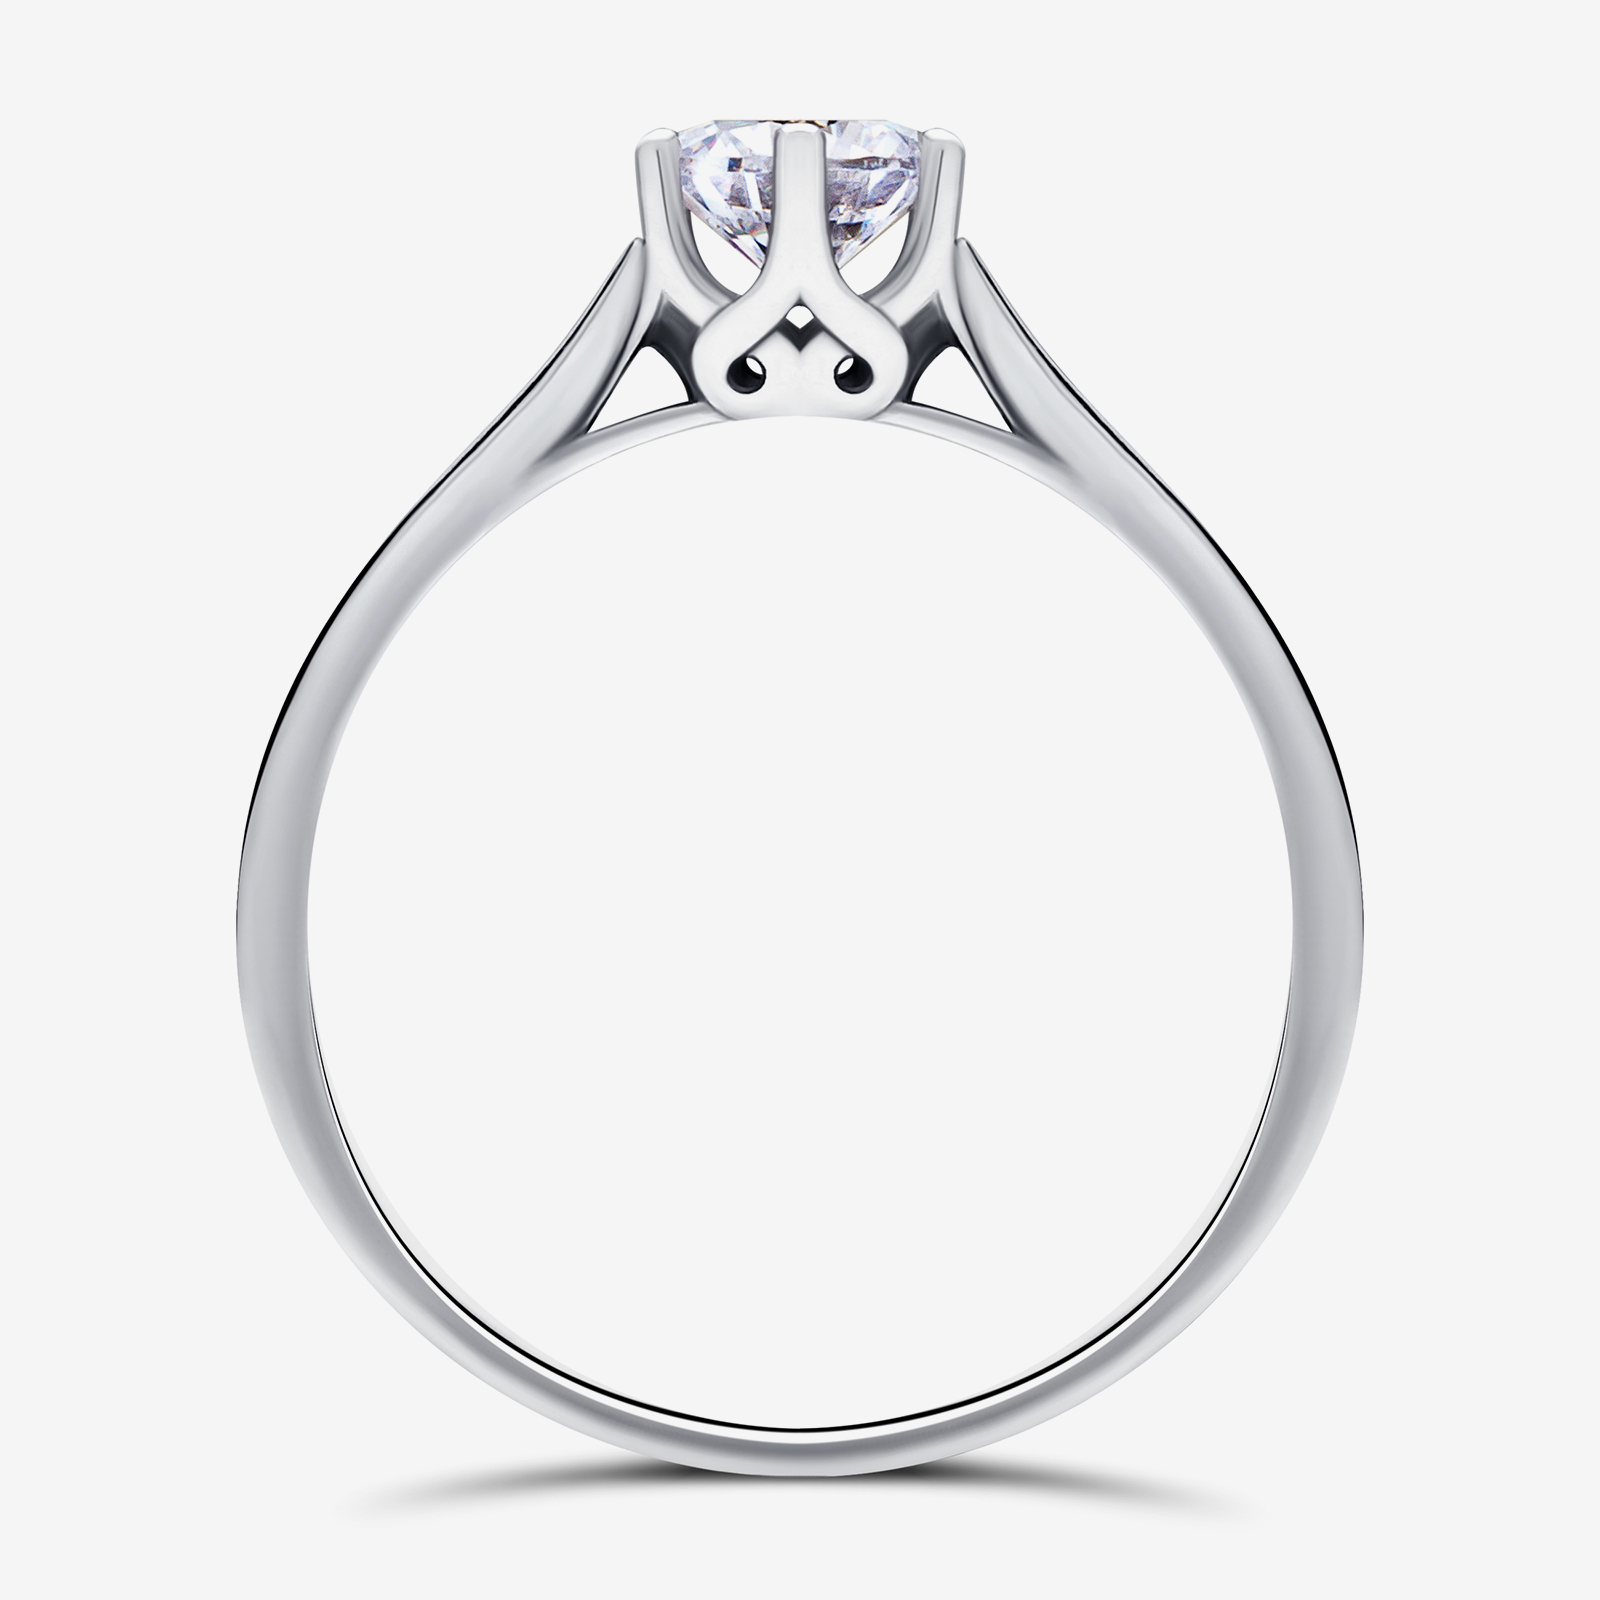 ring product photo